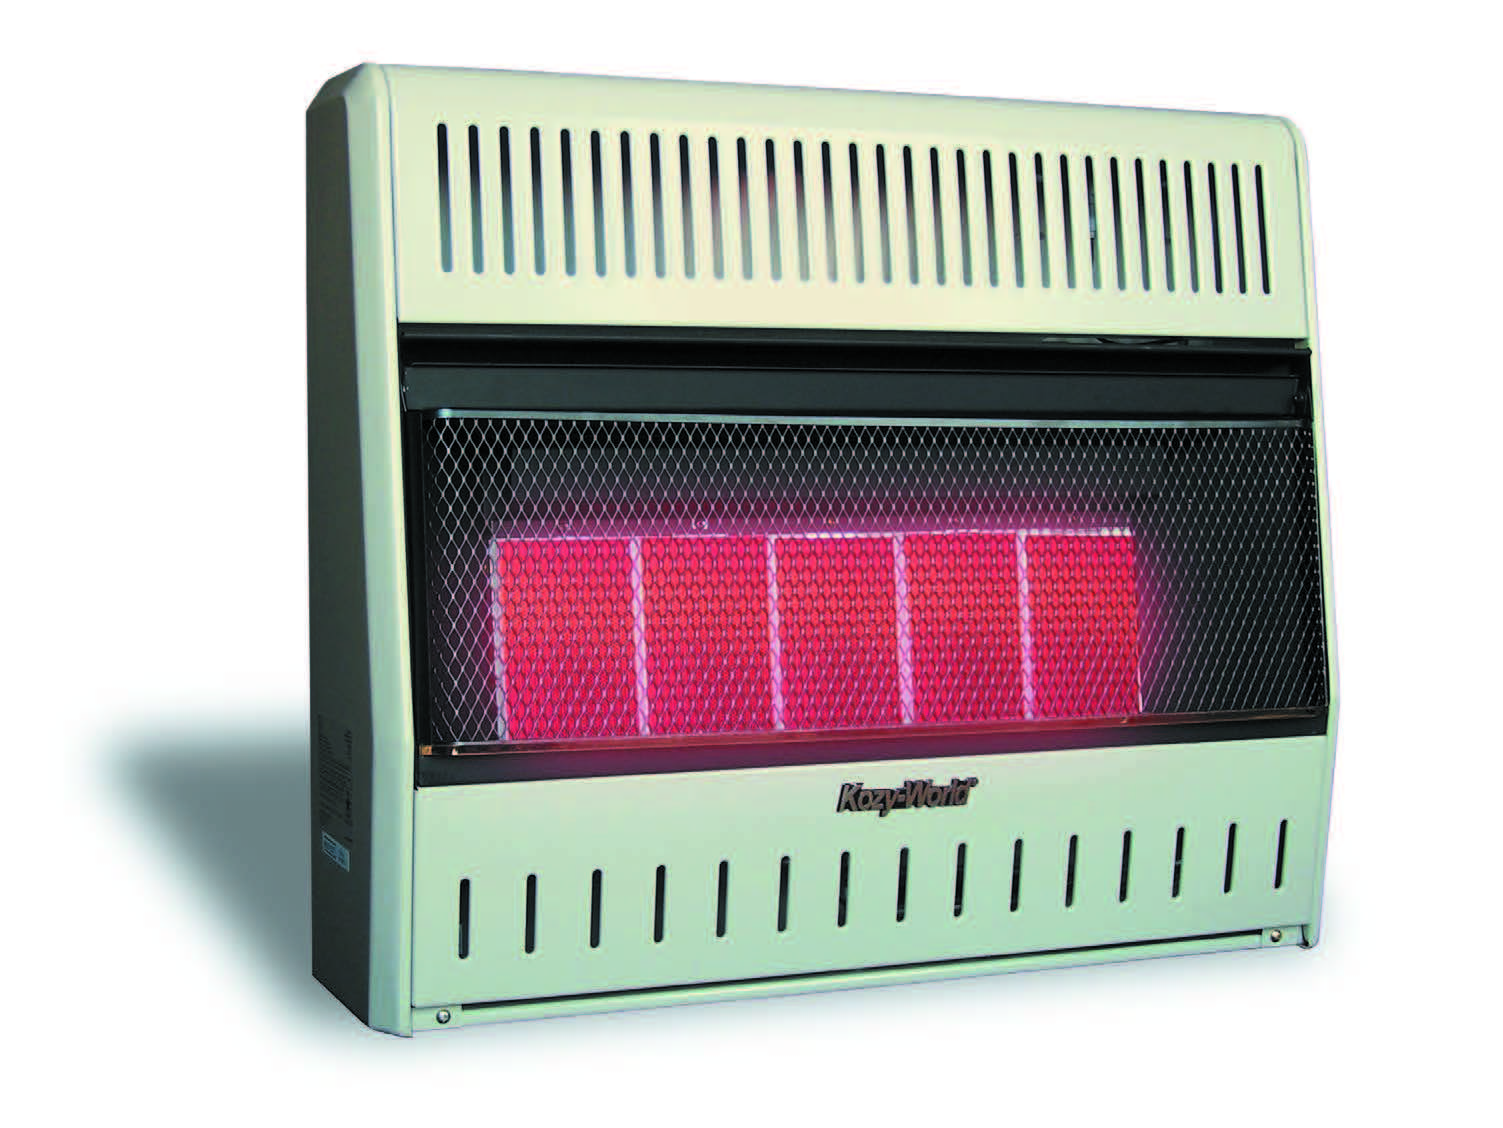 Wall Mount Space Heater To Warm Up Room Inside Your House